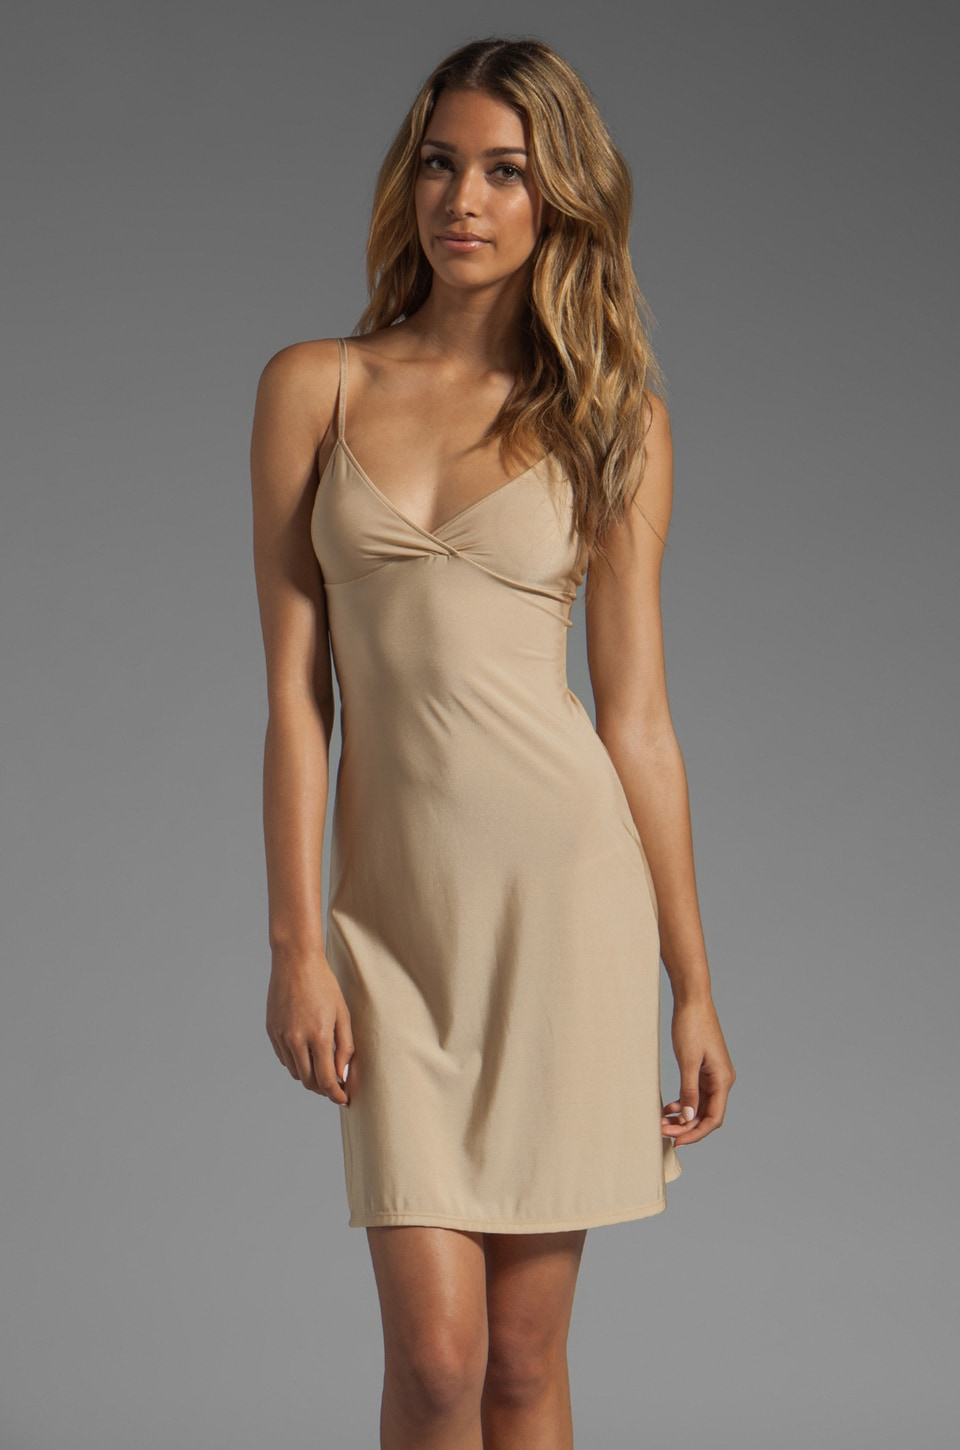 Only Hearts Second Skins Convertible Racerback Chemise in Nude